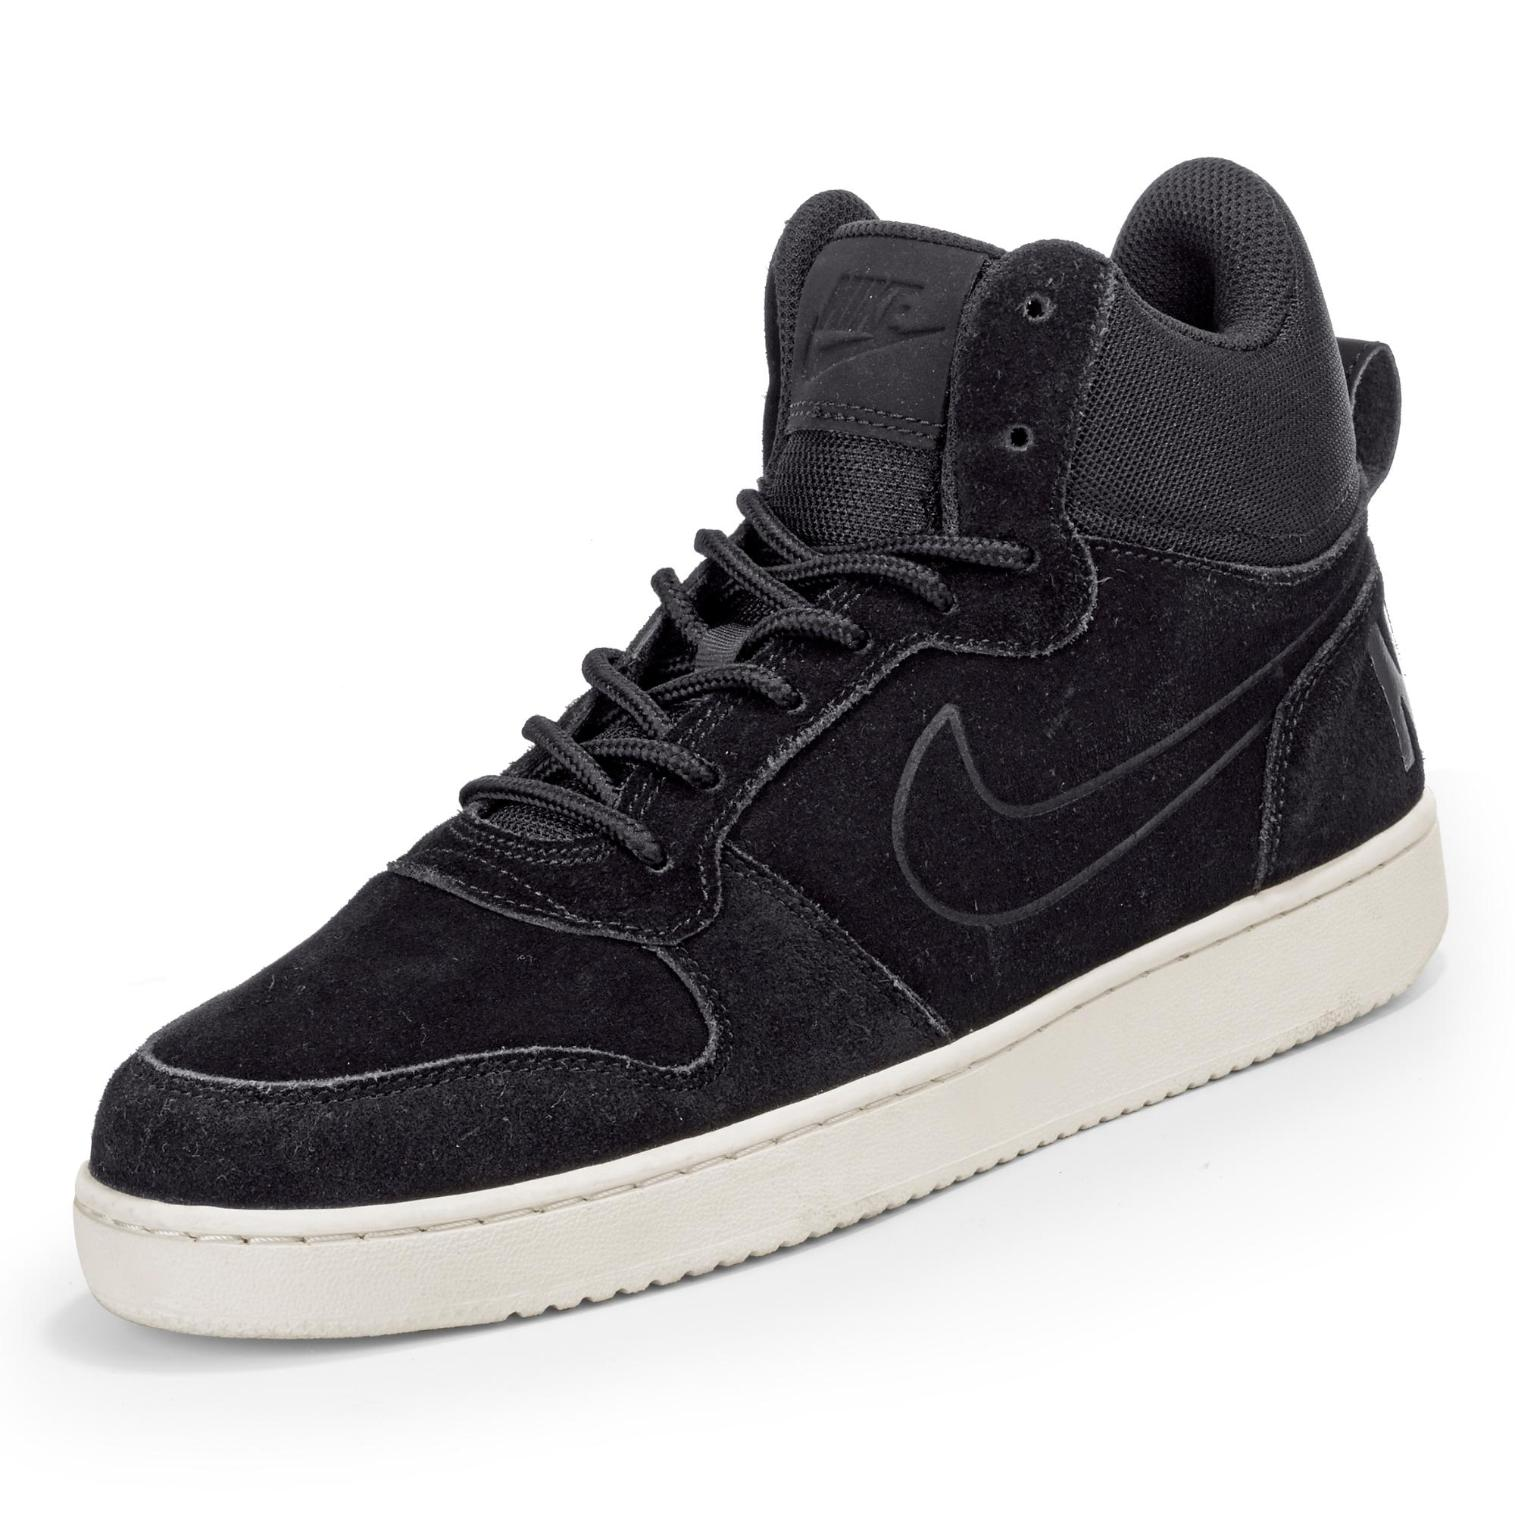 Nike Court Borough Mid Sneaker in Farbe schwarz